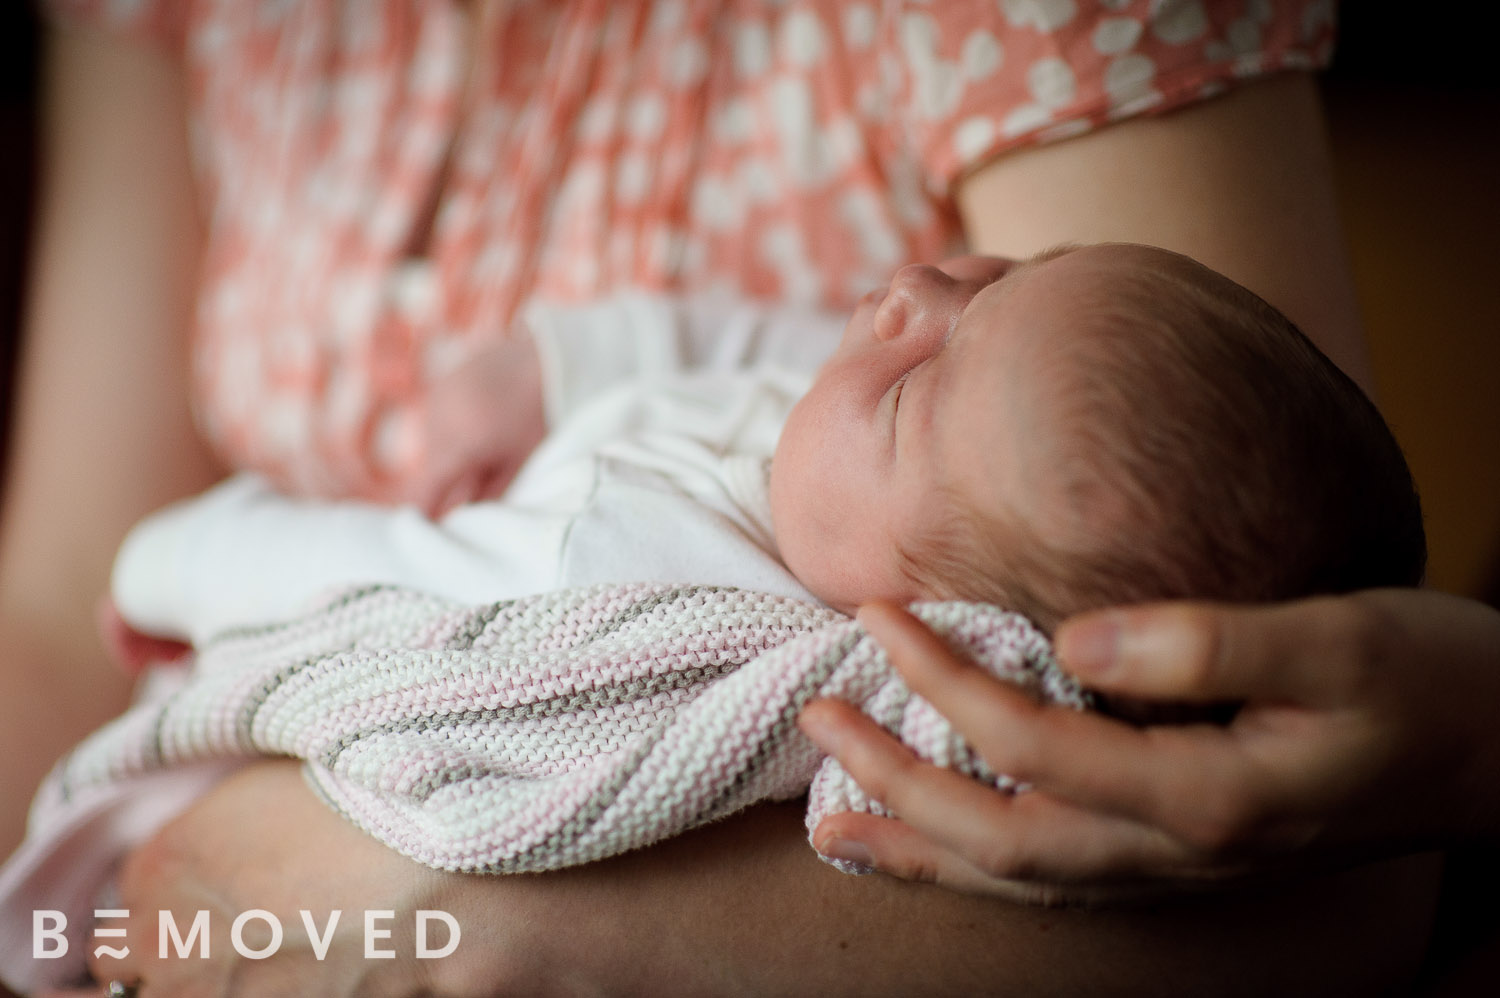 004_newborn-family-photography.jpg